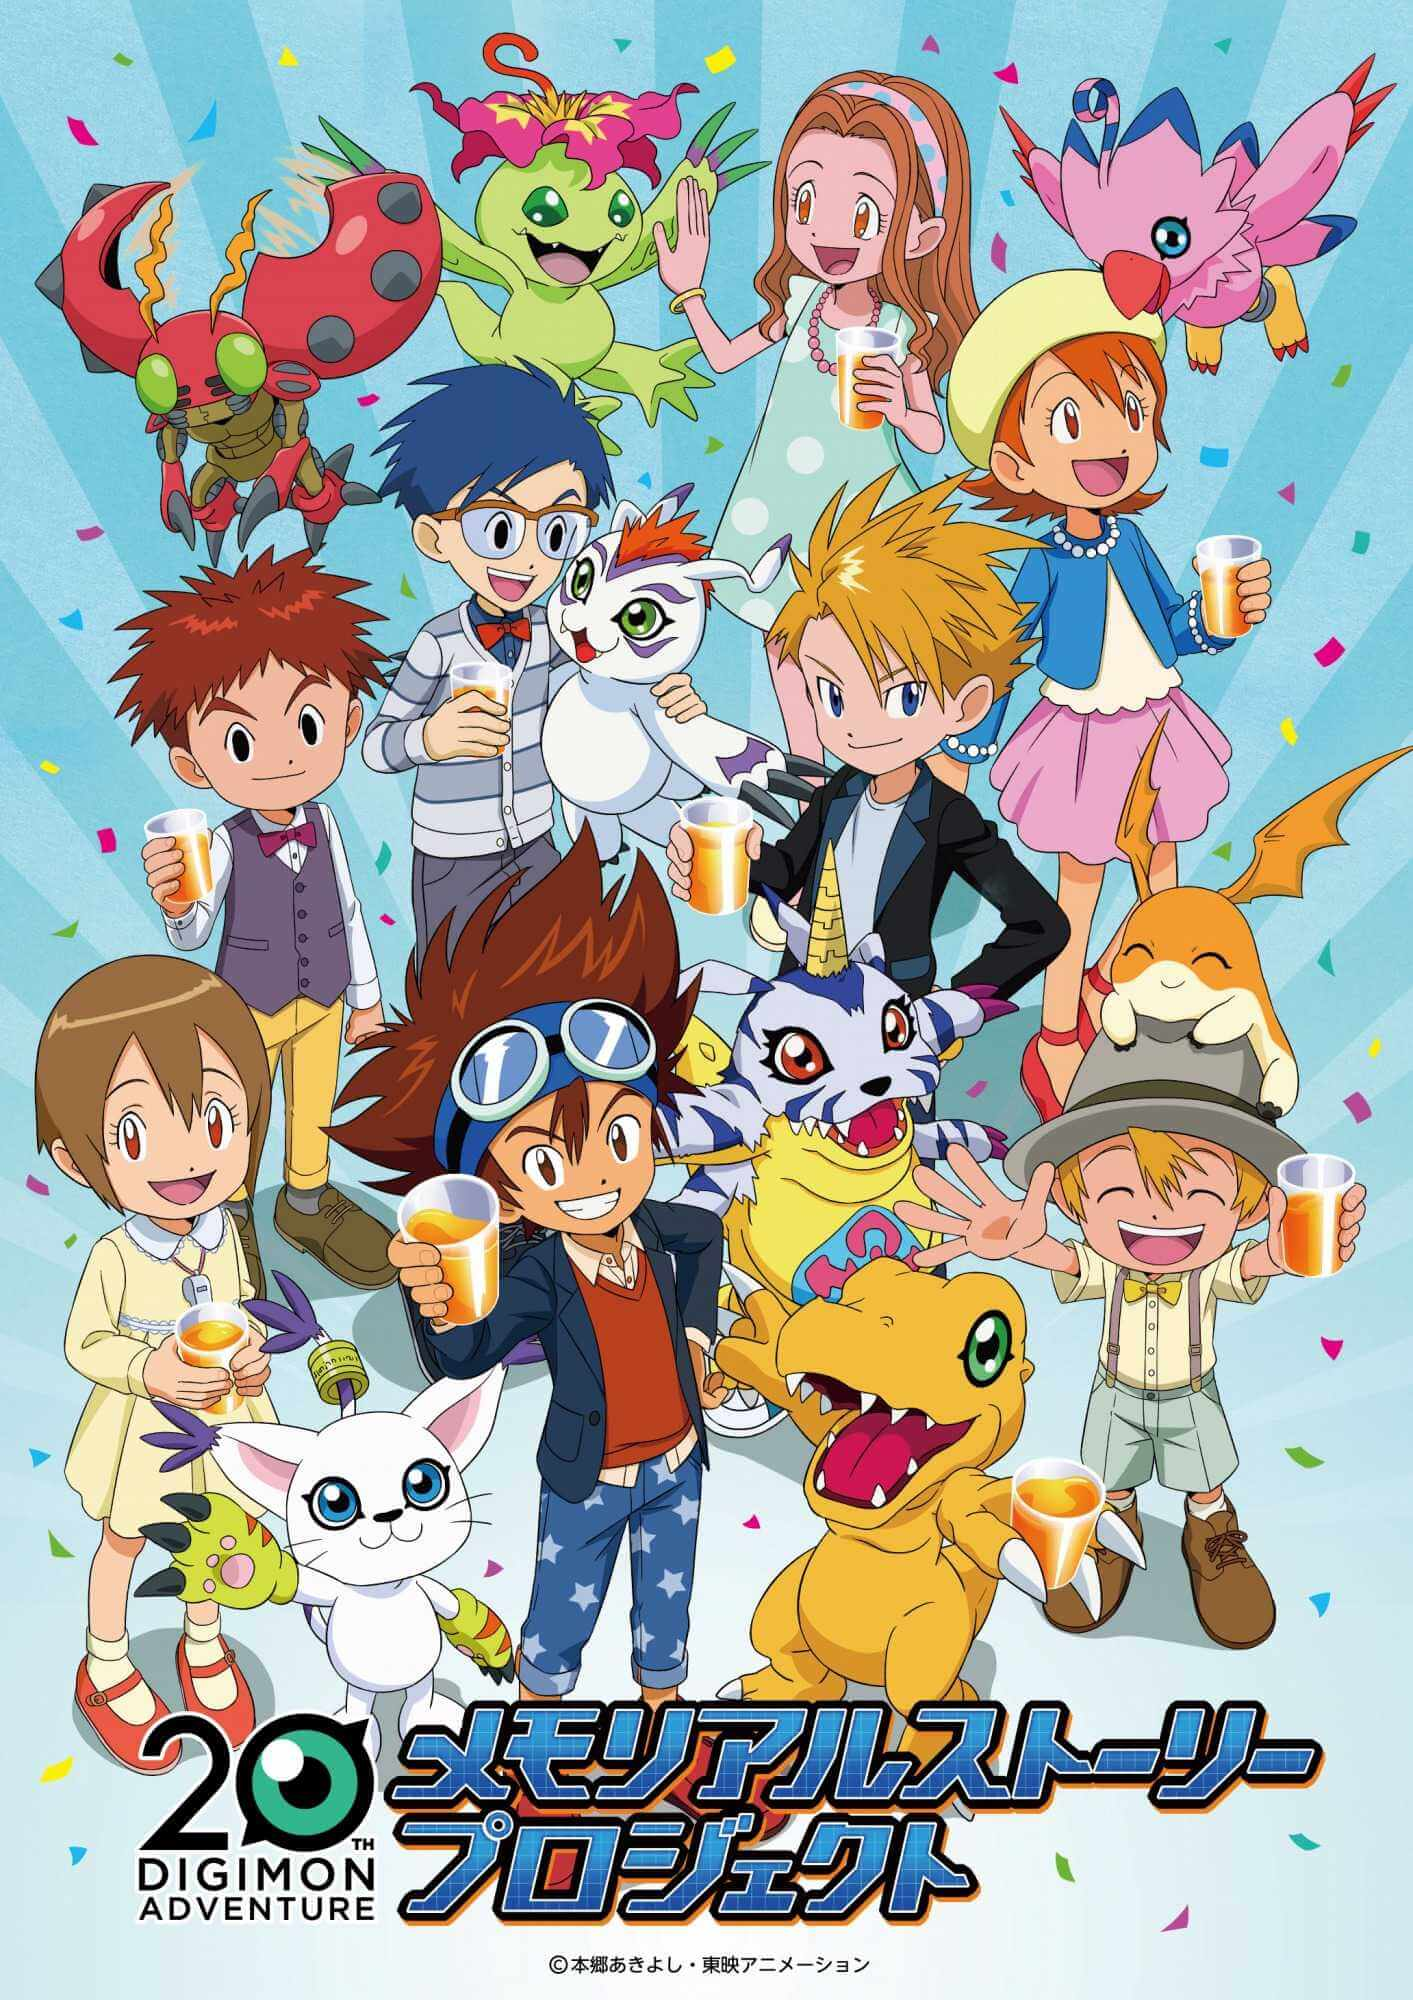 Photo of Nuevo anime de Digimon será de Adventure.